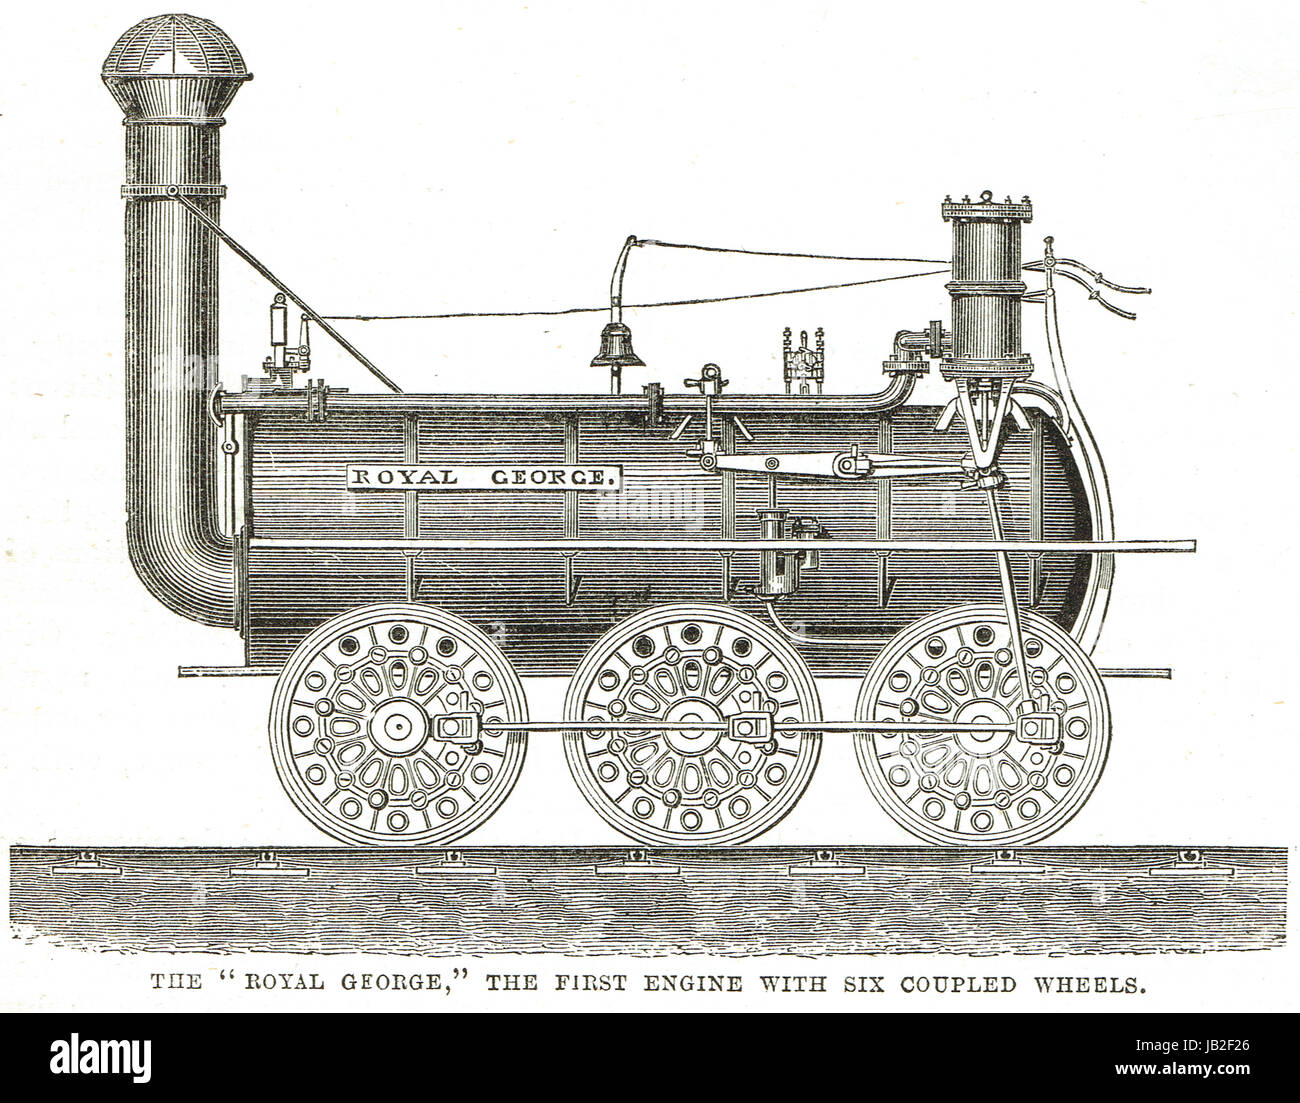 The Royal George Steam Locomotive 1827 by Timothy Hackworth - Stock Image